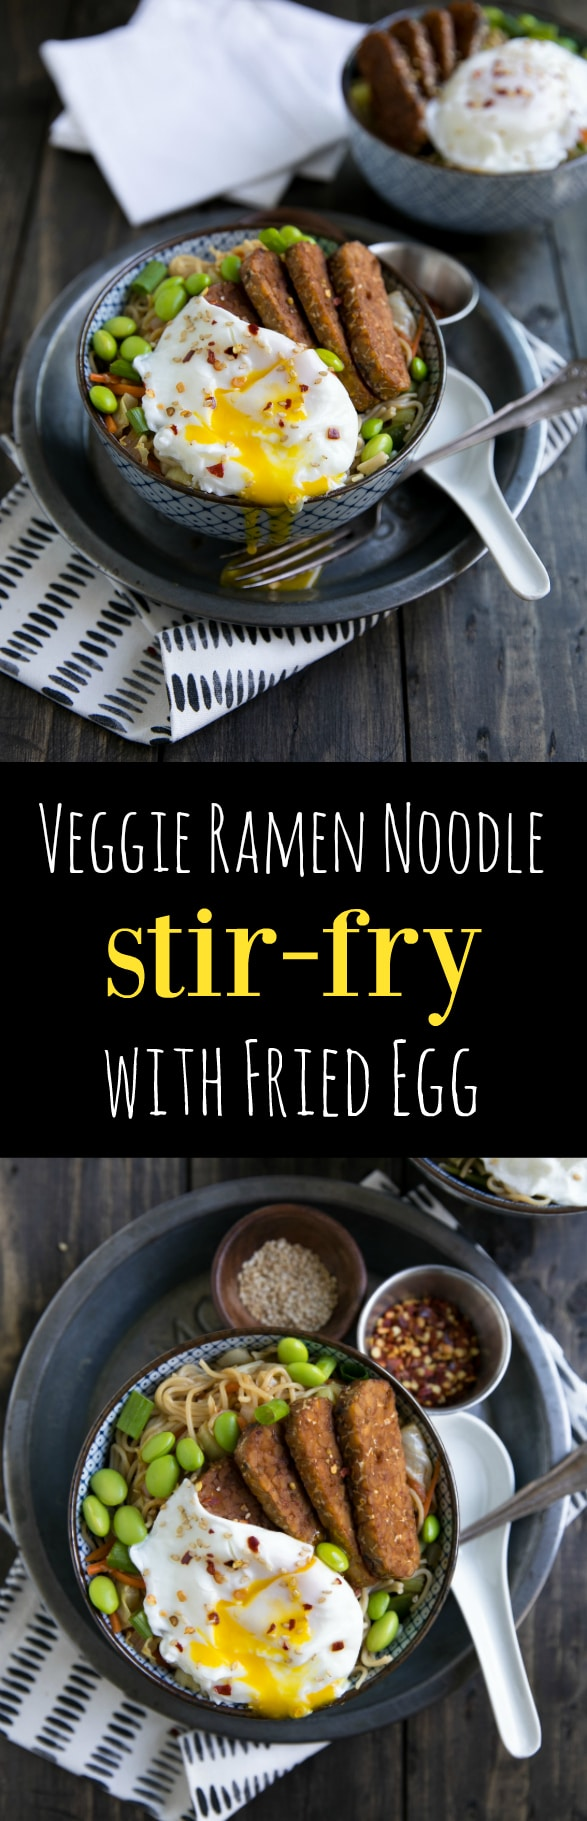 Veggie and protein packed, these Ramen Noodle Stir Fry Bowls with Tempeh and Poached Egg